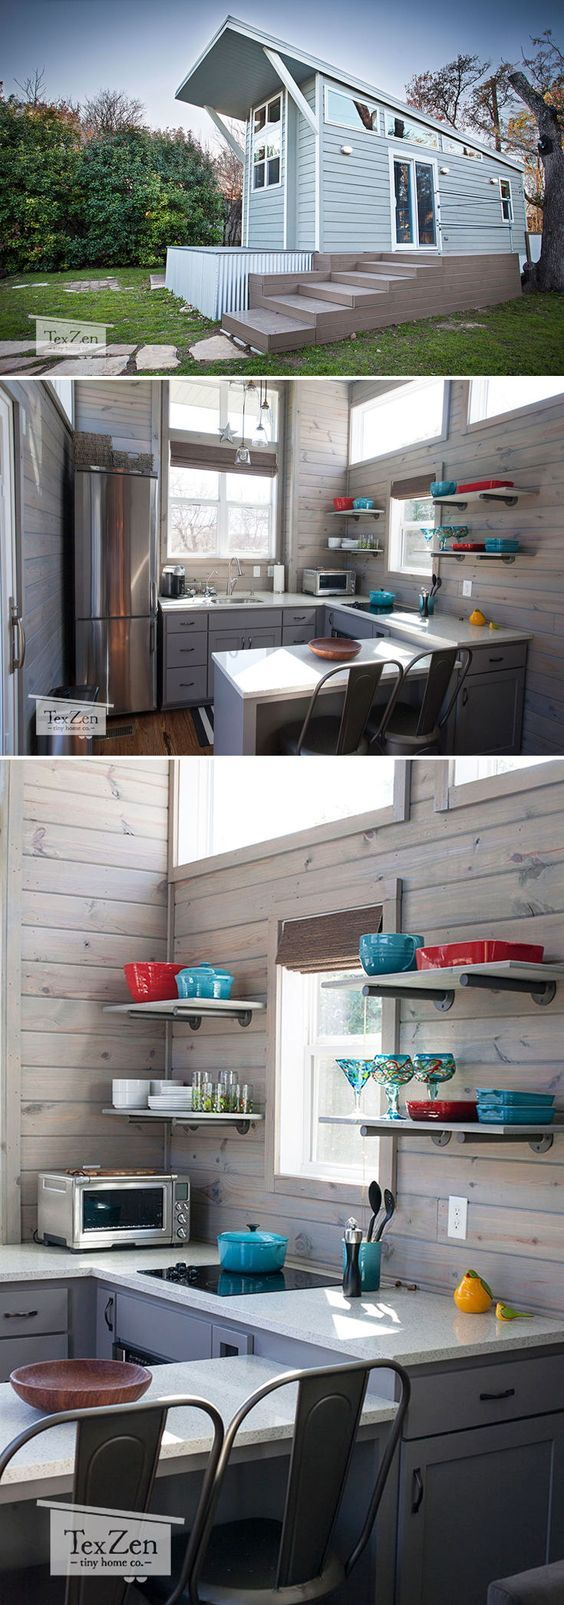 Open Concept By Texzen Tiny Home Co House Plan With